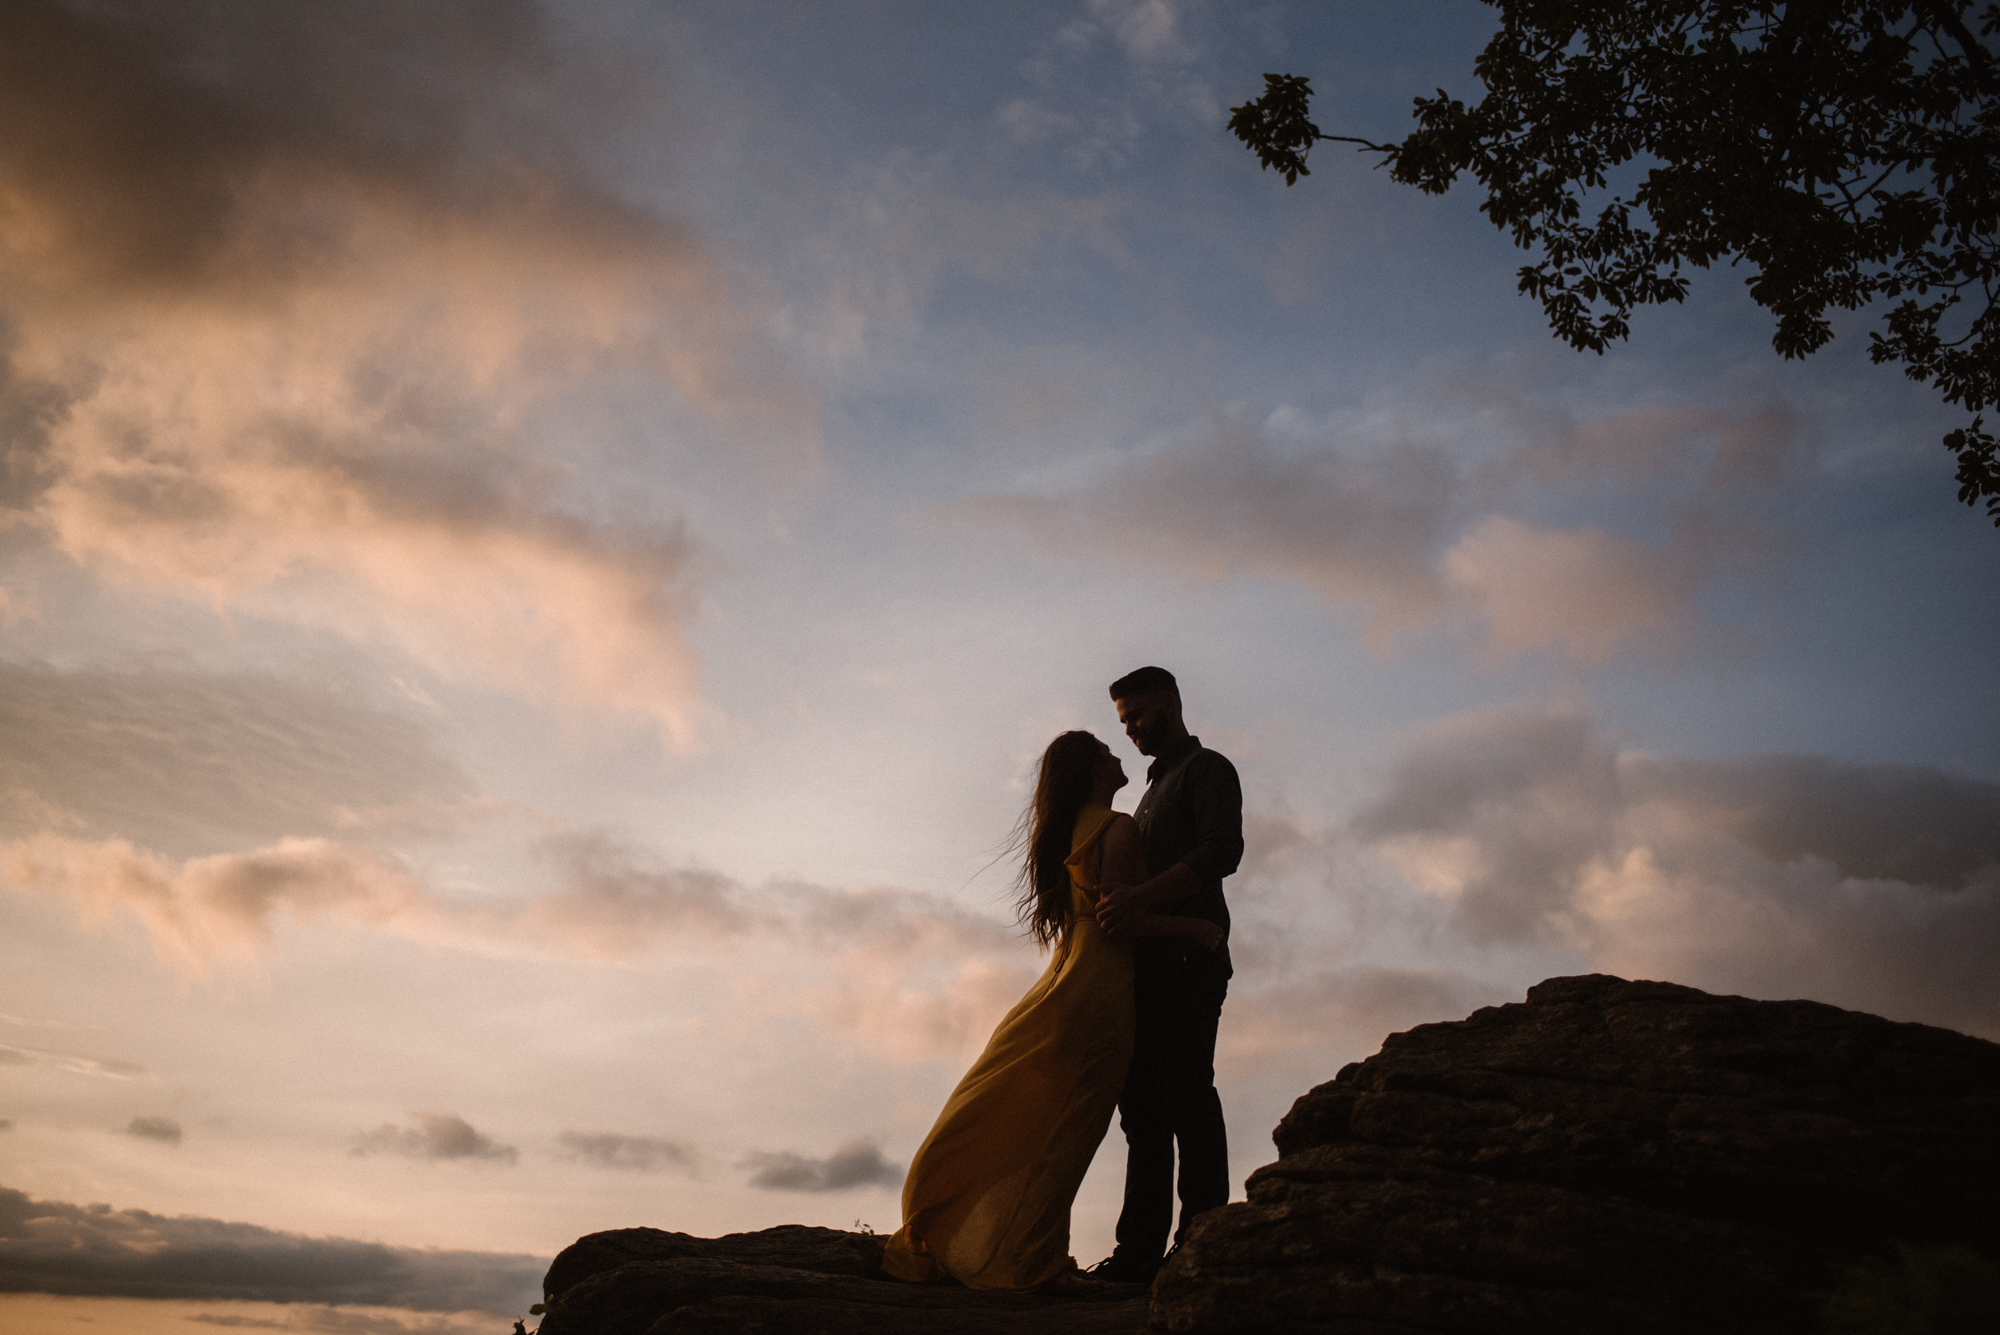 Camryn and Larry Sunrise Engagement Session in Shenandoah National Park - Things to Do in Luray Virginia - Adventurous Couple Photo Shoot White Sails Creative_10.jpg